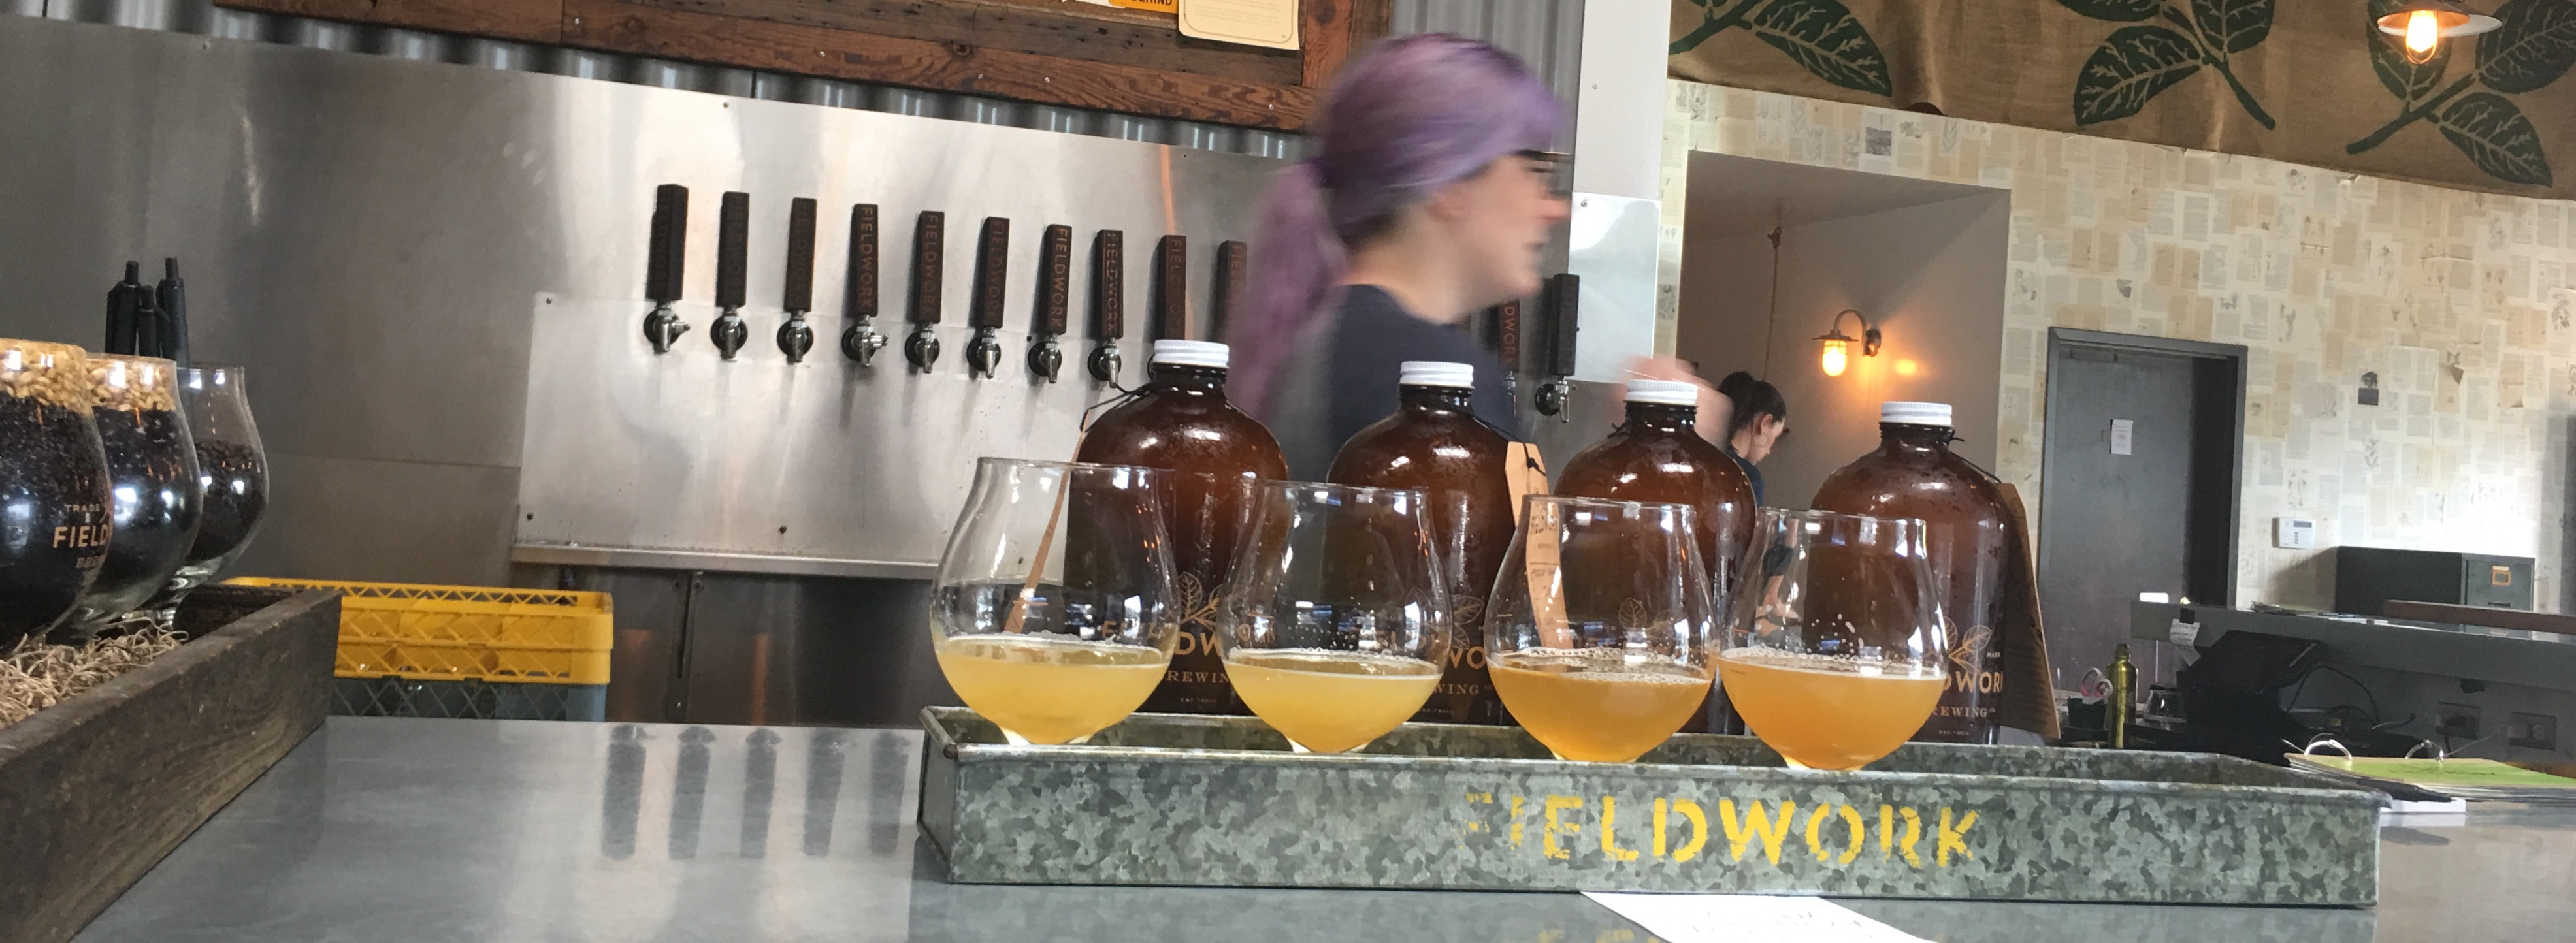 Beer tasting flight at Fieldwork Brewing Co